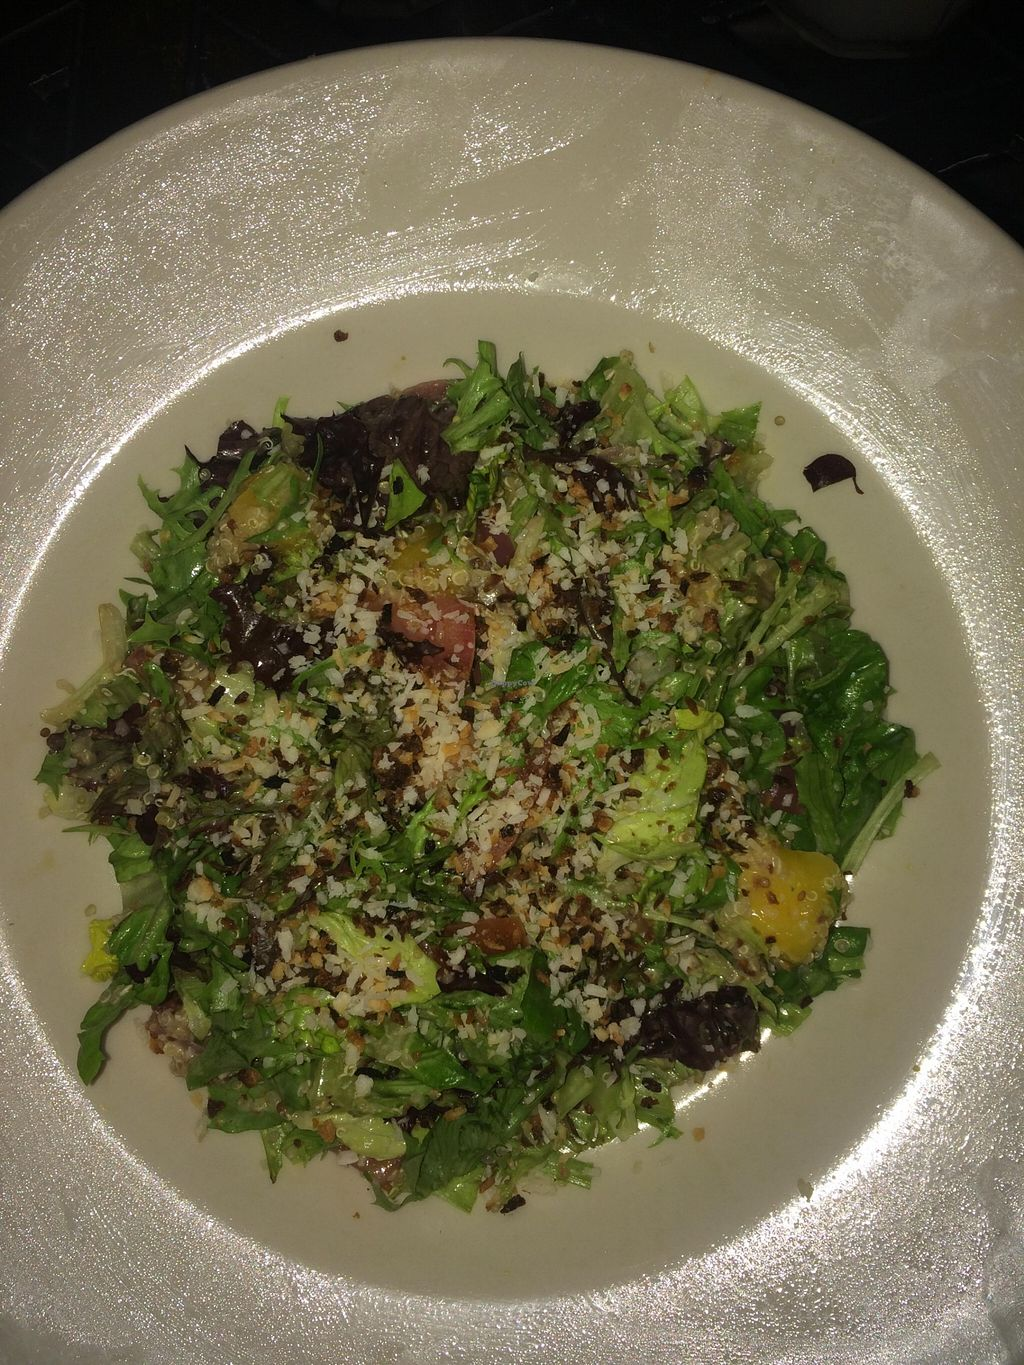 """Photo of Miss Lucy's  by <a href=""""/members/profile/JCvegMA"""">JCvegMA</a> <br/>Coco-mango salad <br/> May 3, 2016  - <a href='/contact/abuse/image/71564/147271'>Report</a>"""